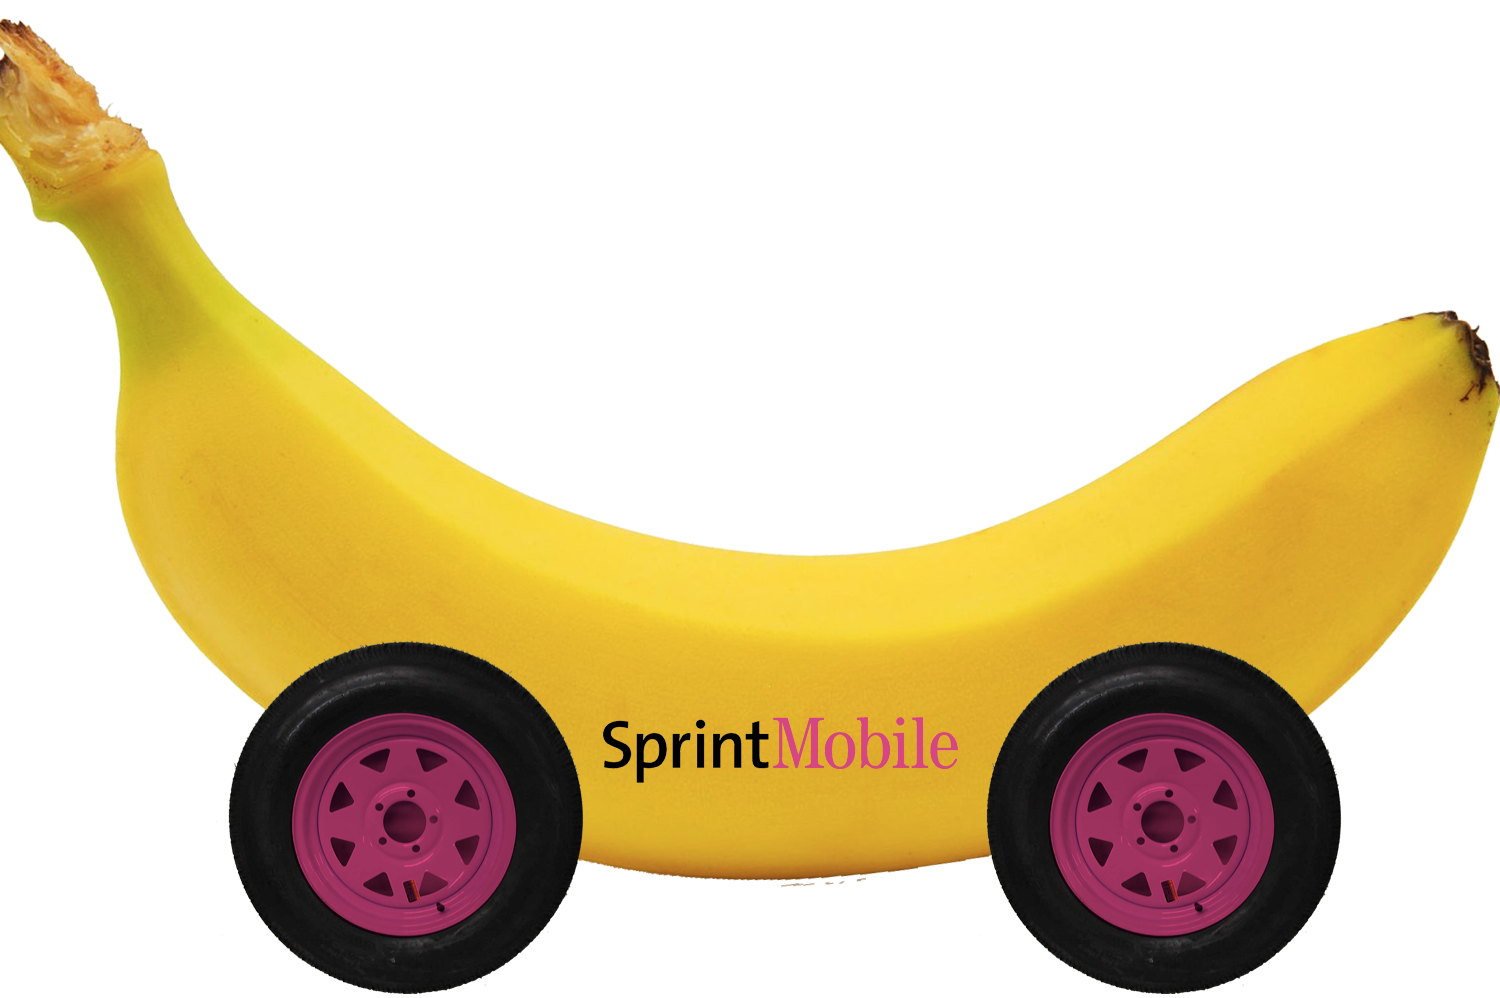 SprinT-Mobile Reportedly Closer To Being An Actual Thing